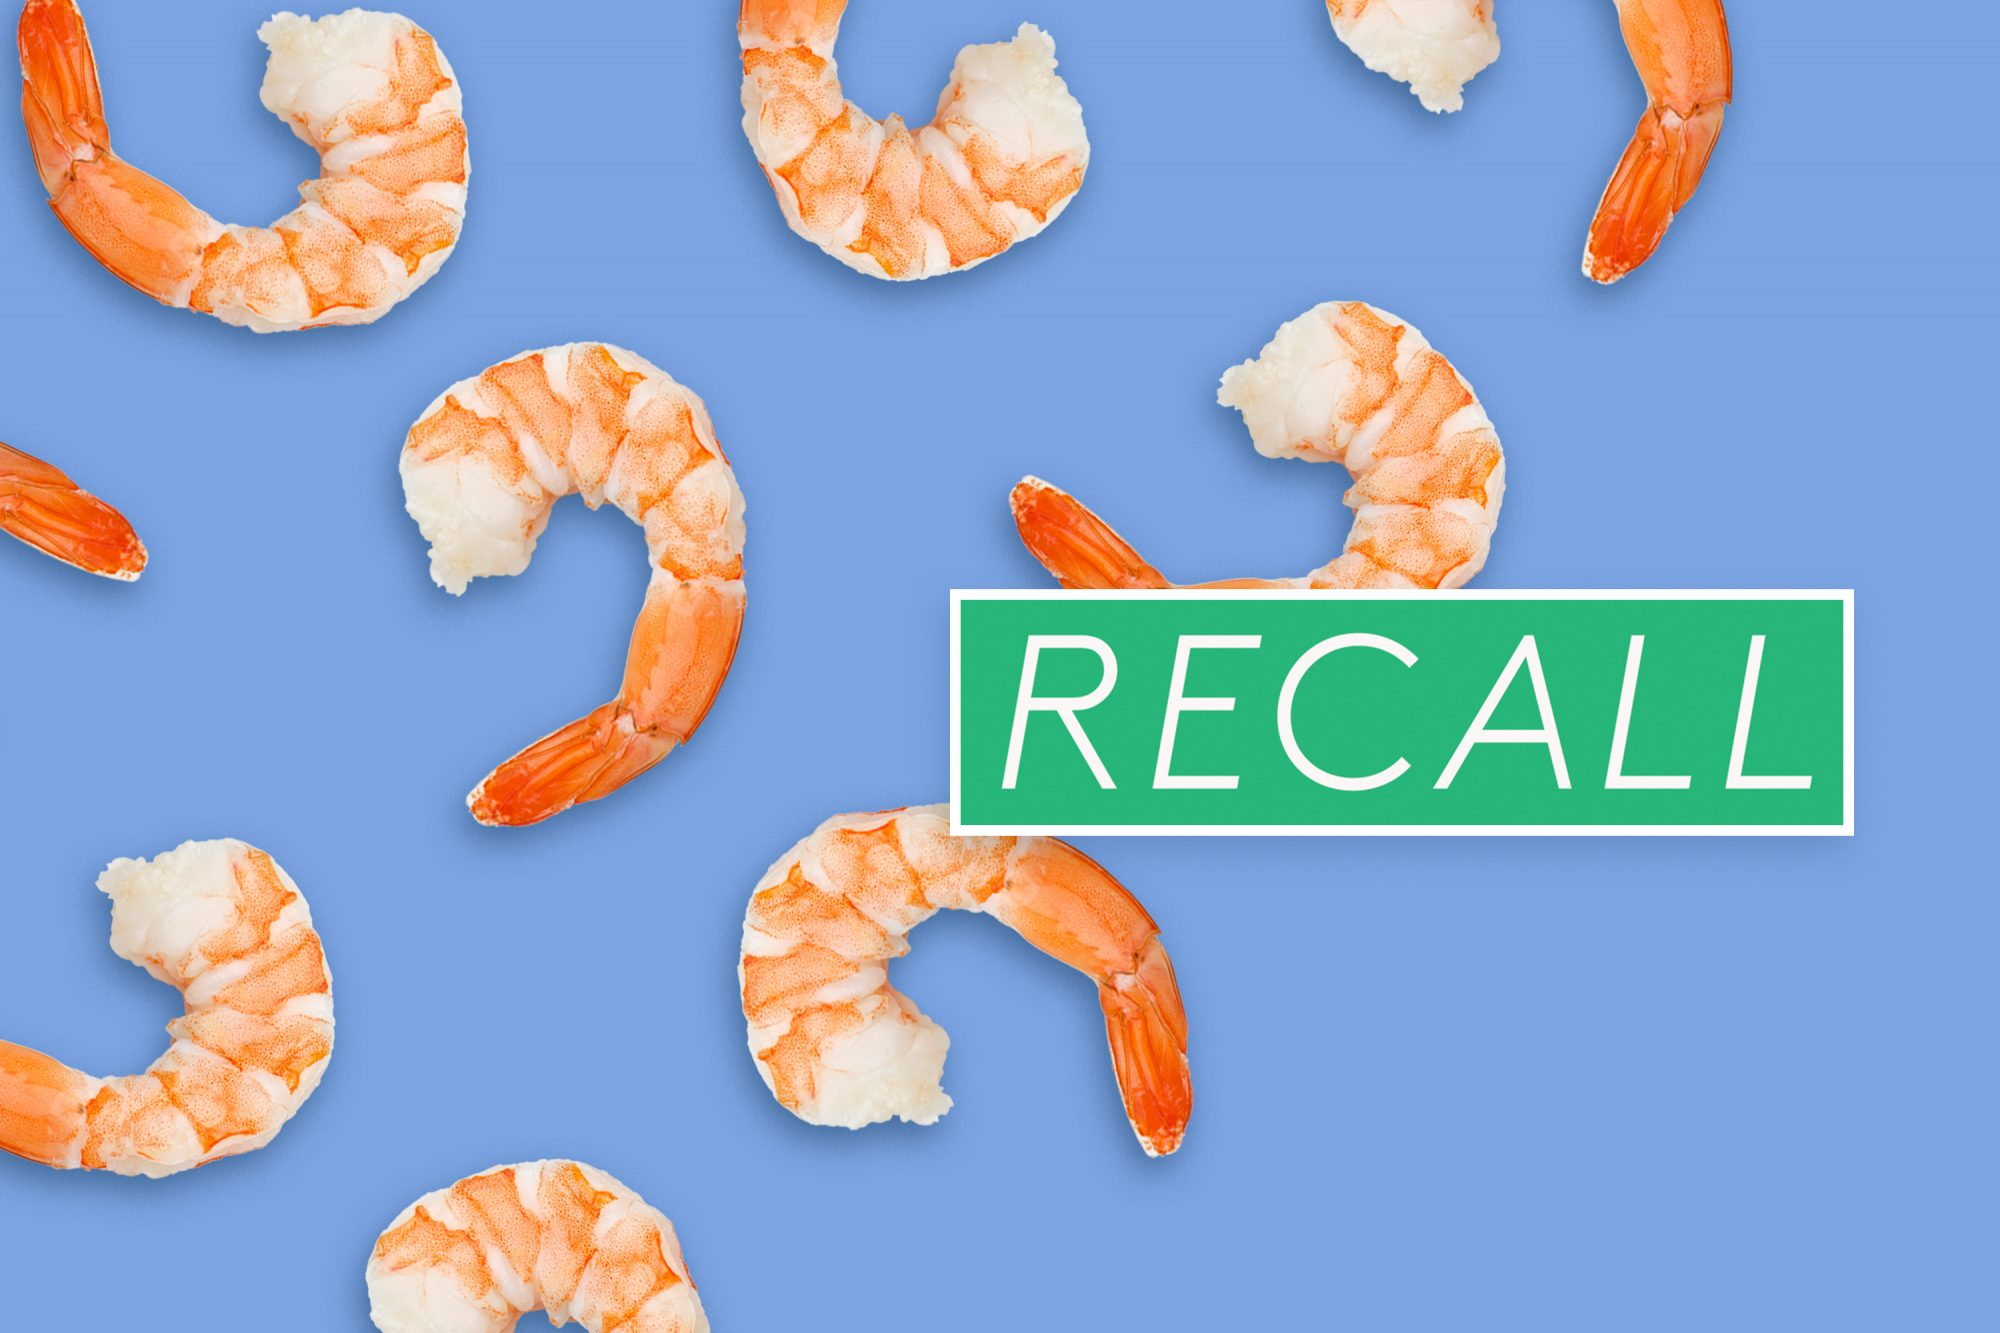 Frozen Shrimp Recall Expands to Includes Products from Whole Foods and Target